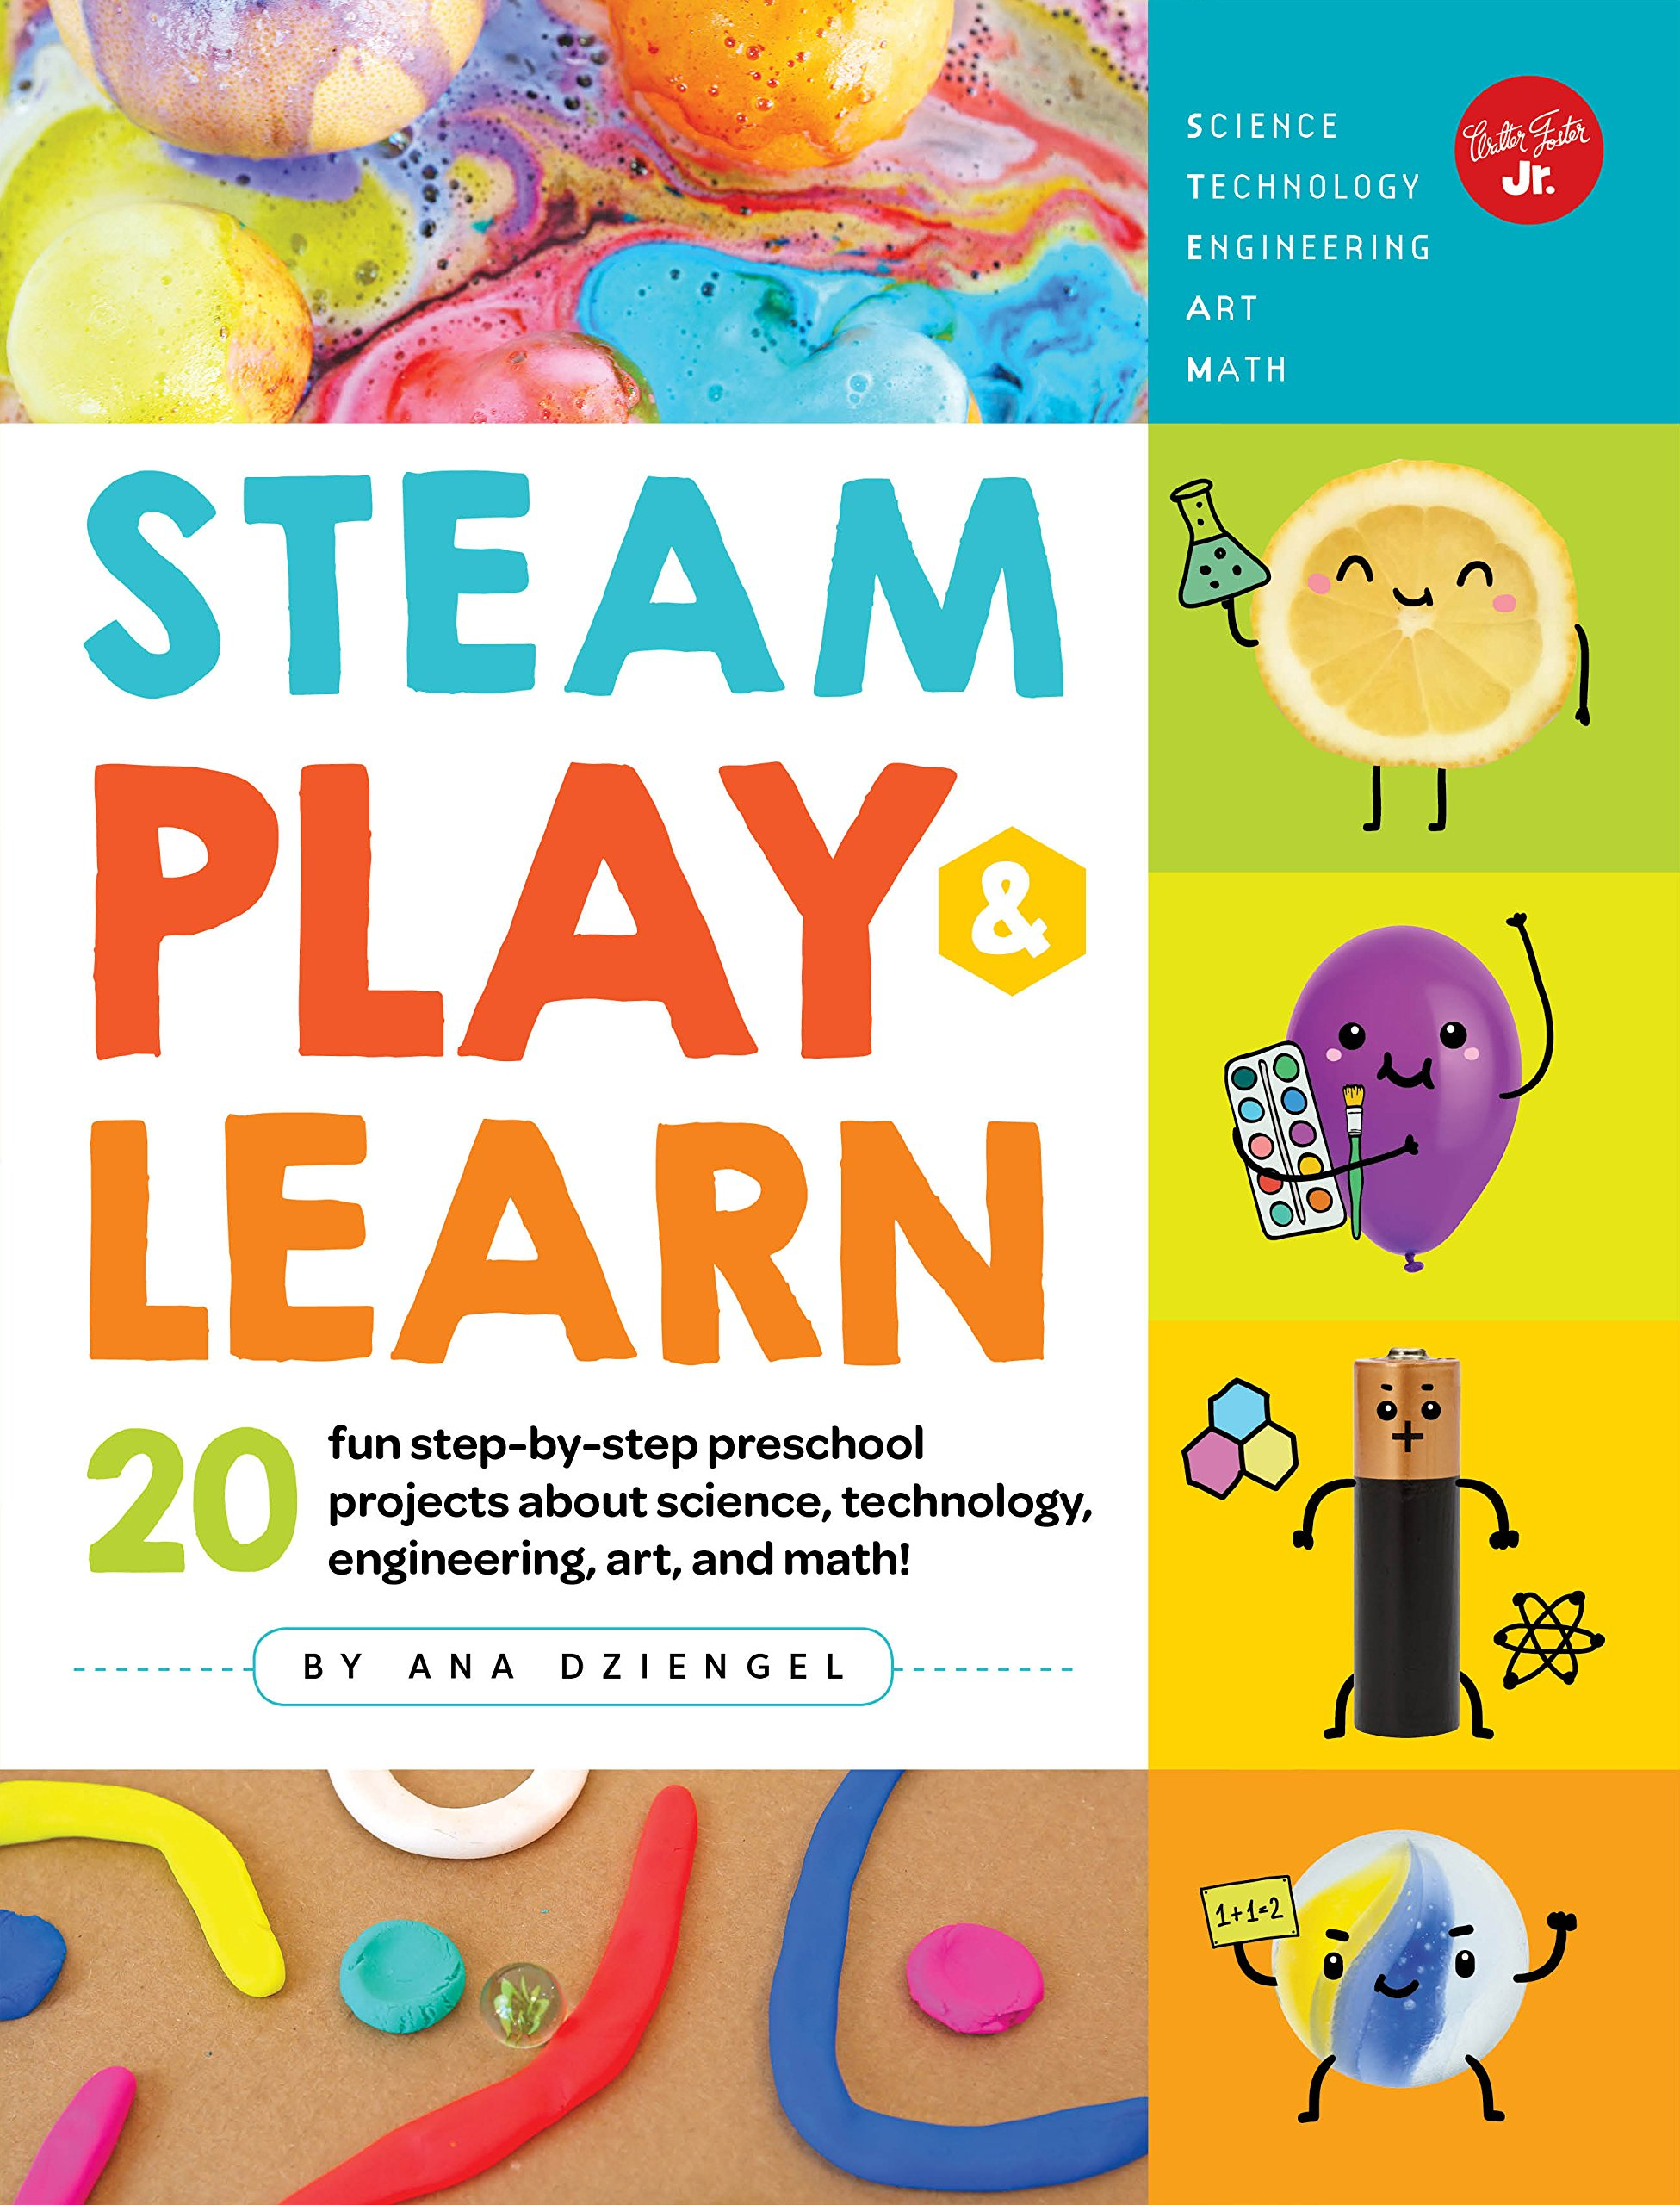 STEAM Play & Learn: 20 fun step-by-step preschool projects about science, technology, engineering, arts, and math!